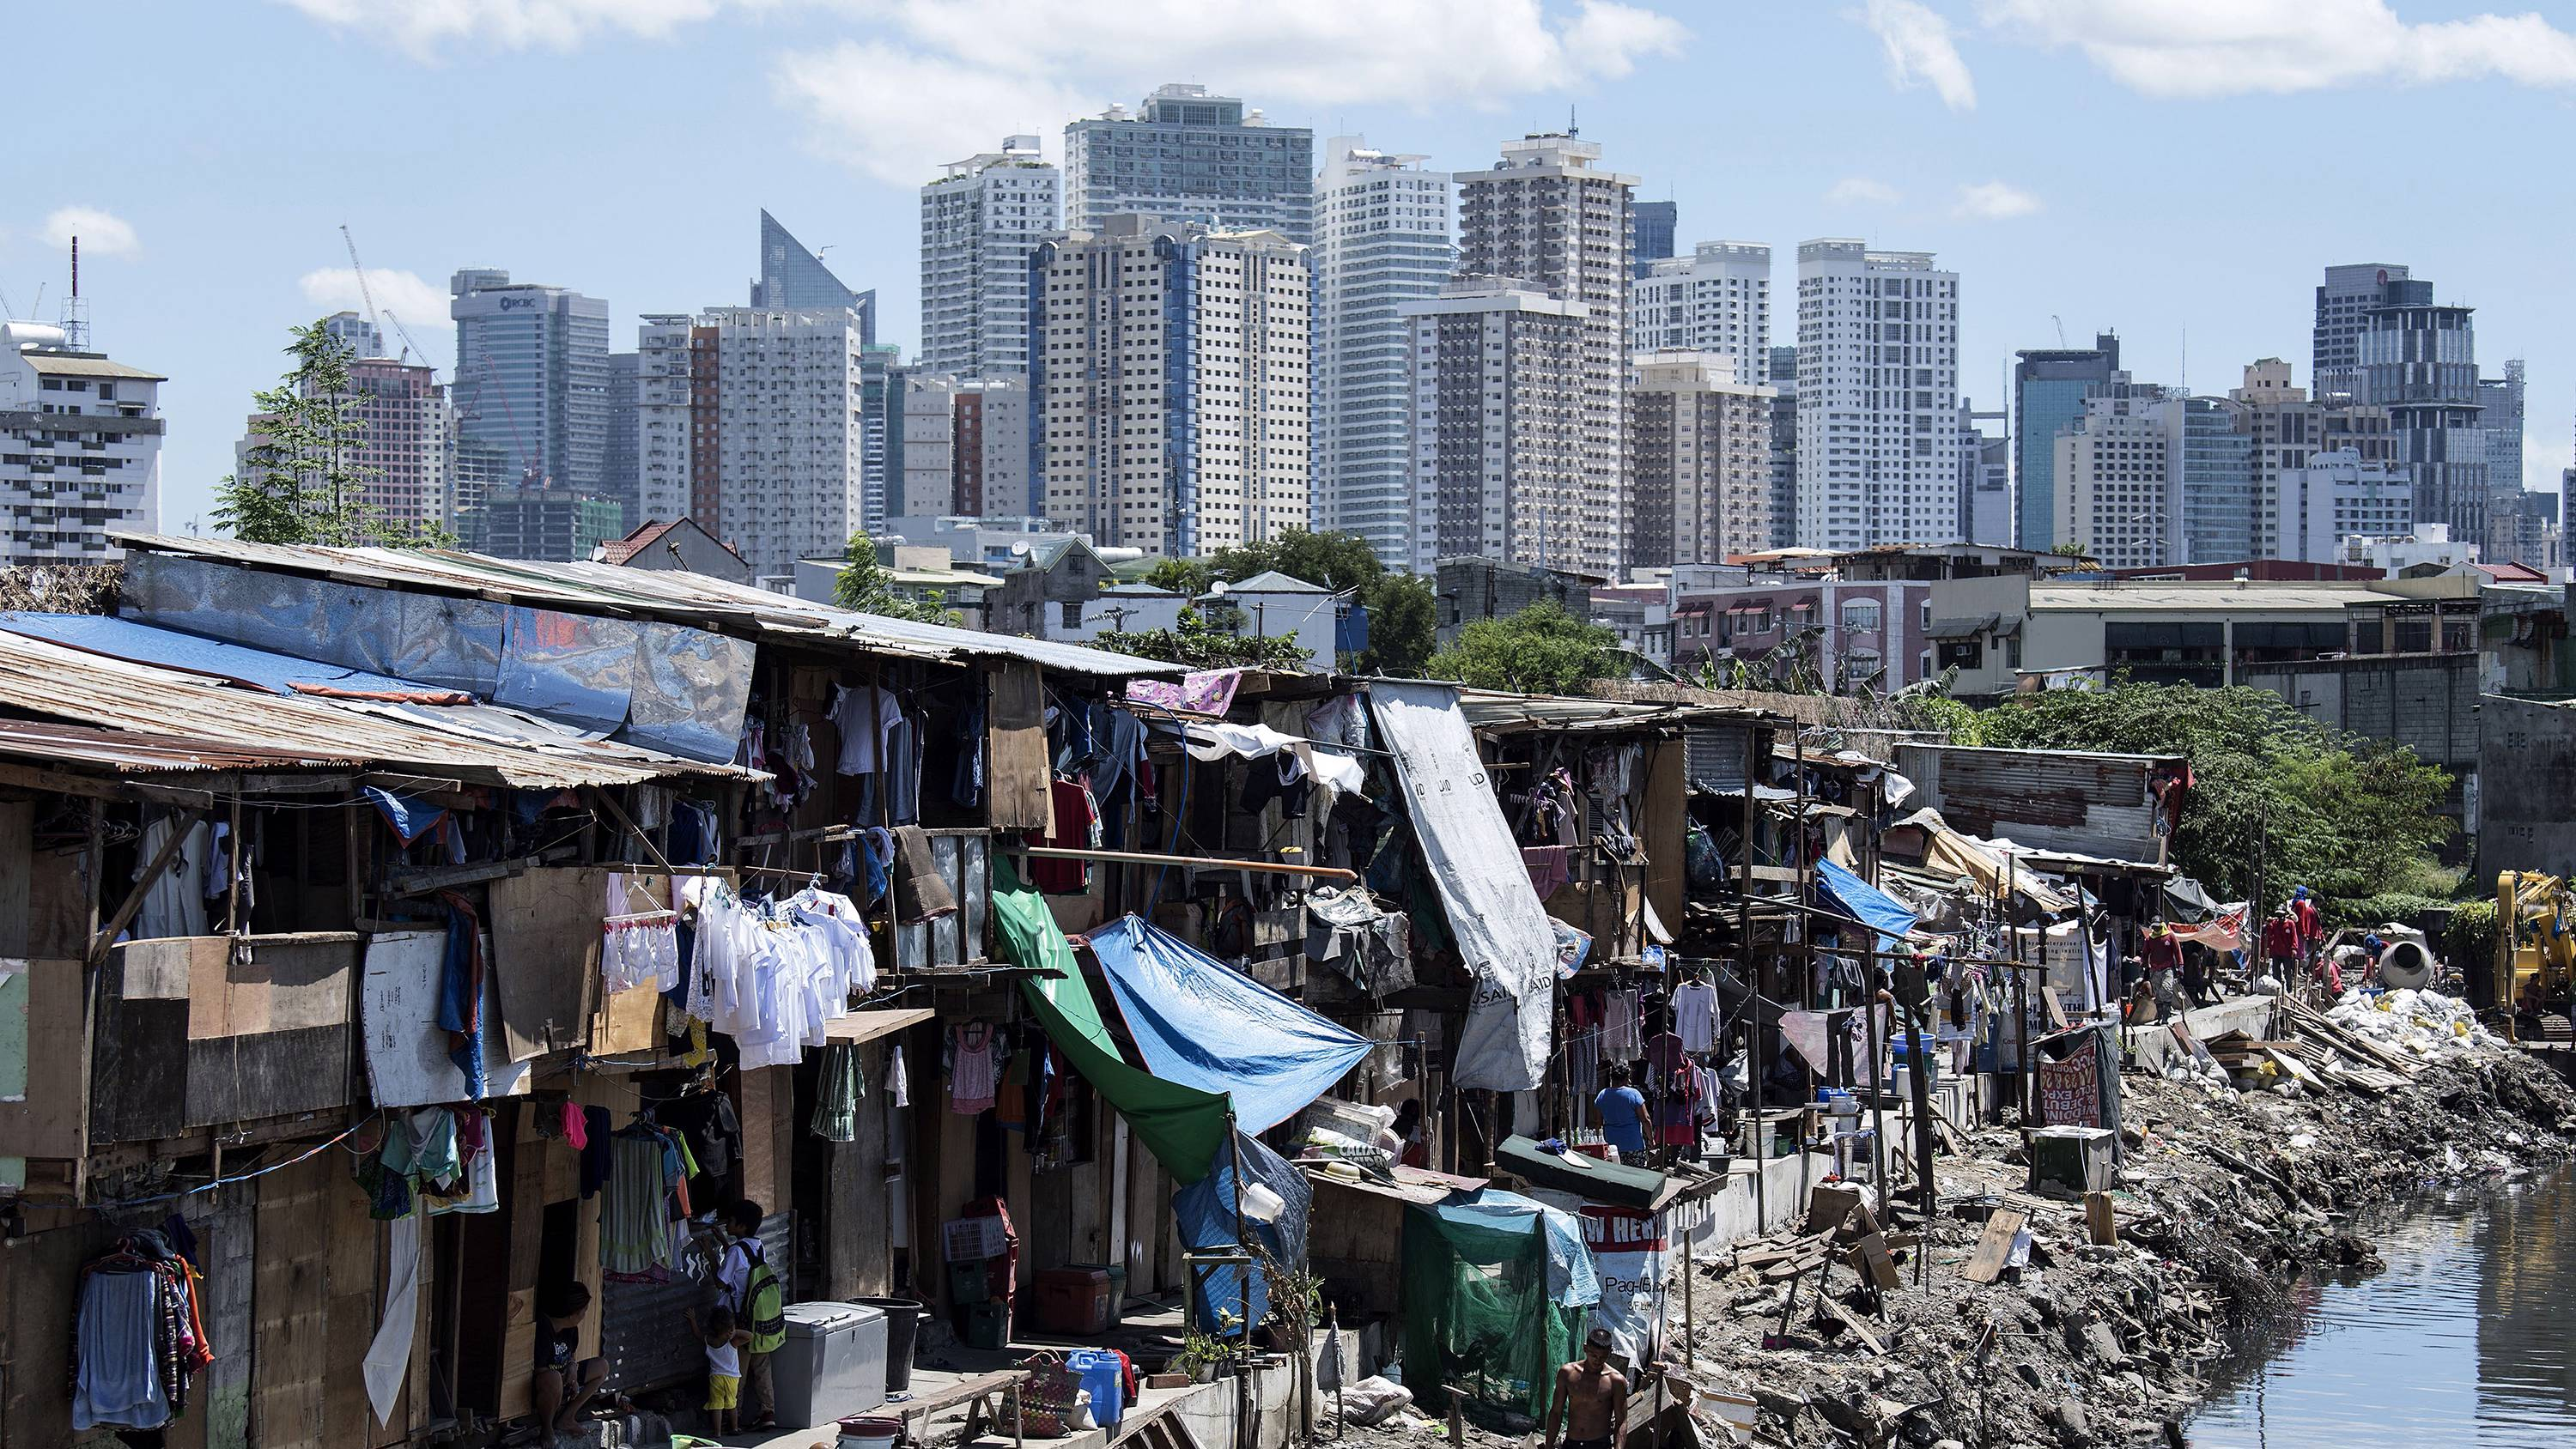 sumner1_NOEL CELISAFP via Getty Images_povertyrichslumcity